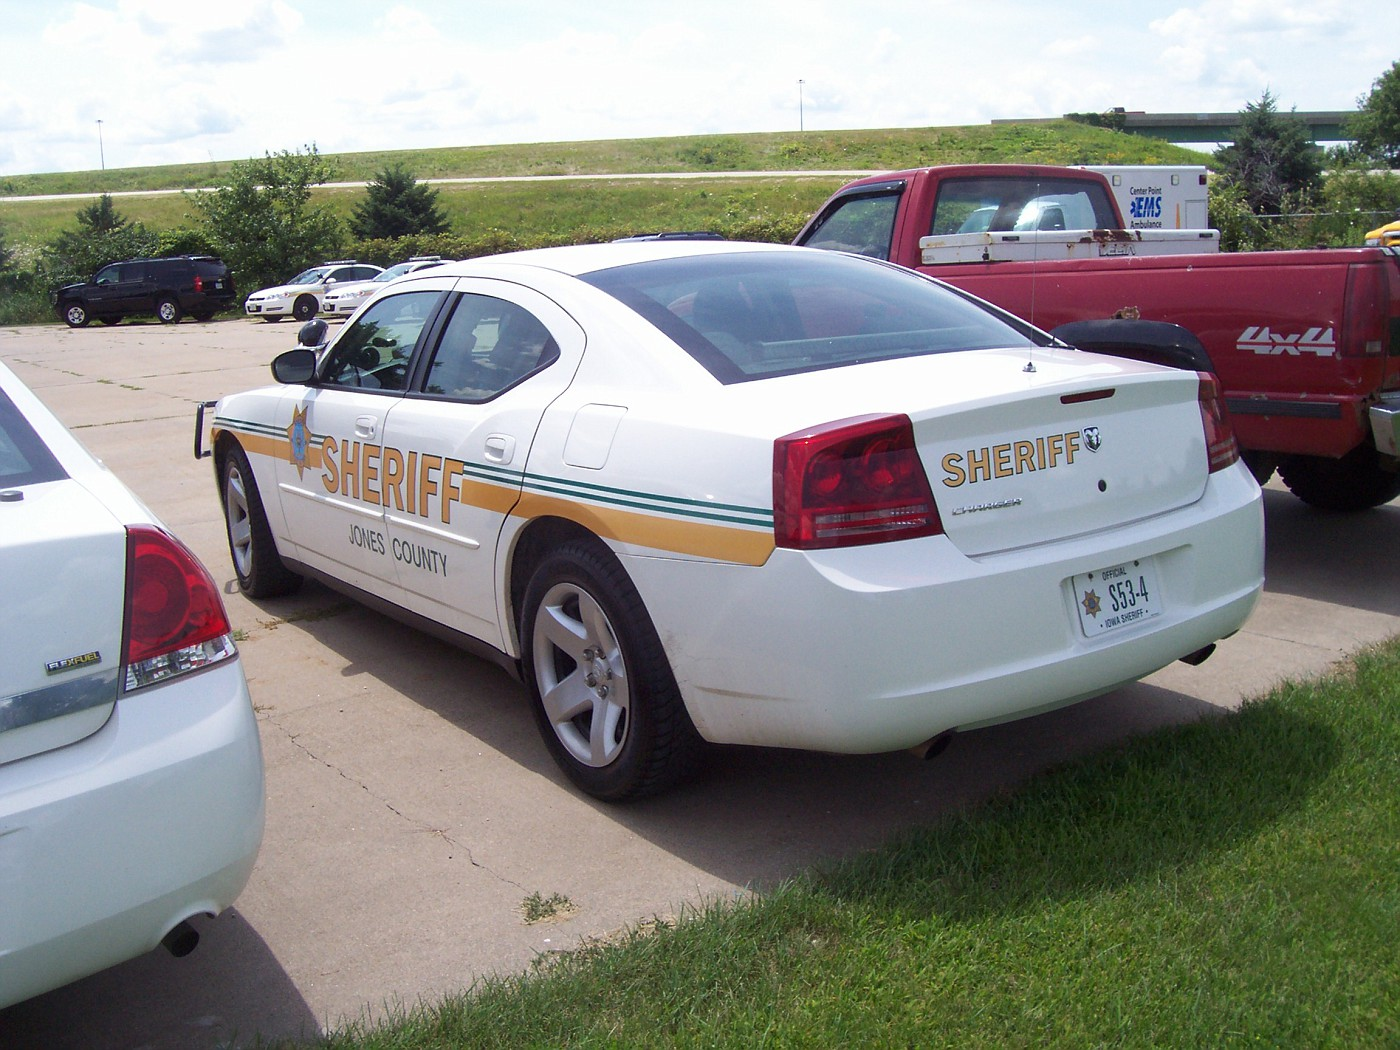 IA - Jones County Sheriff